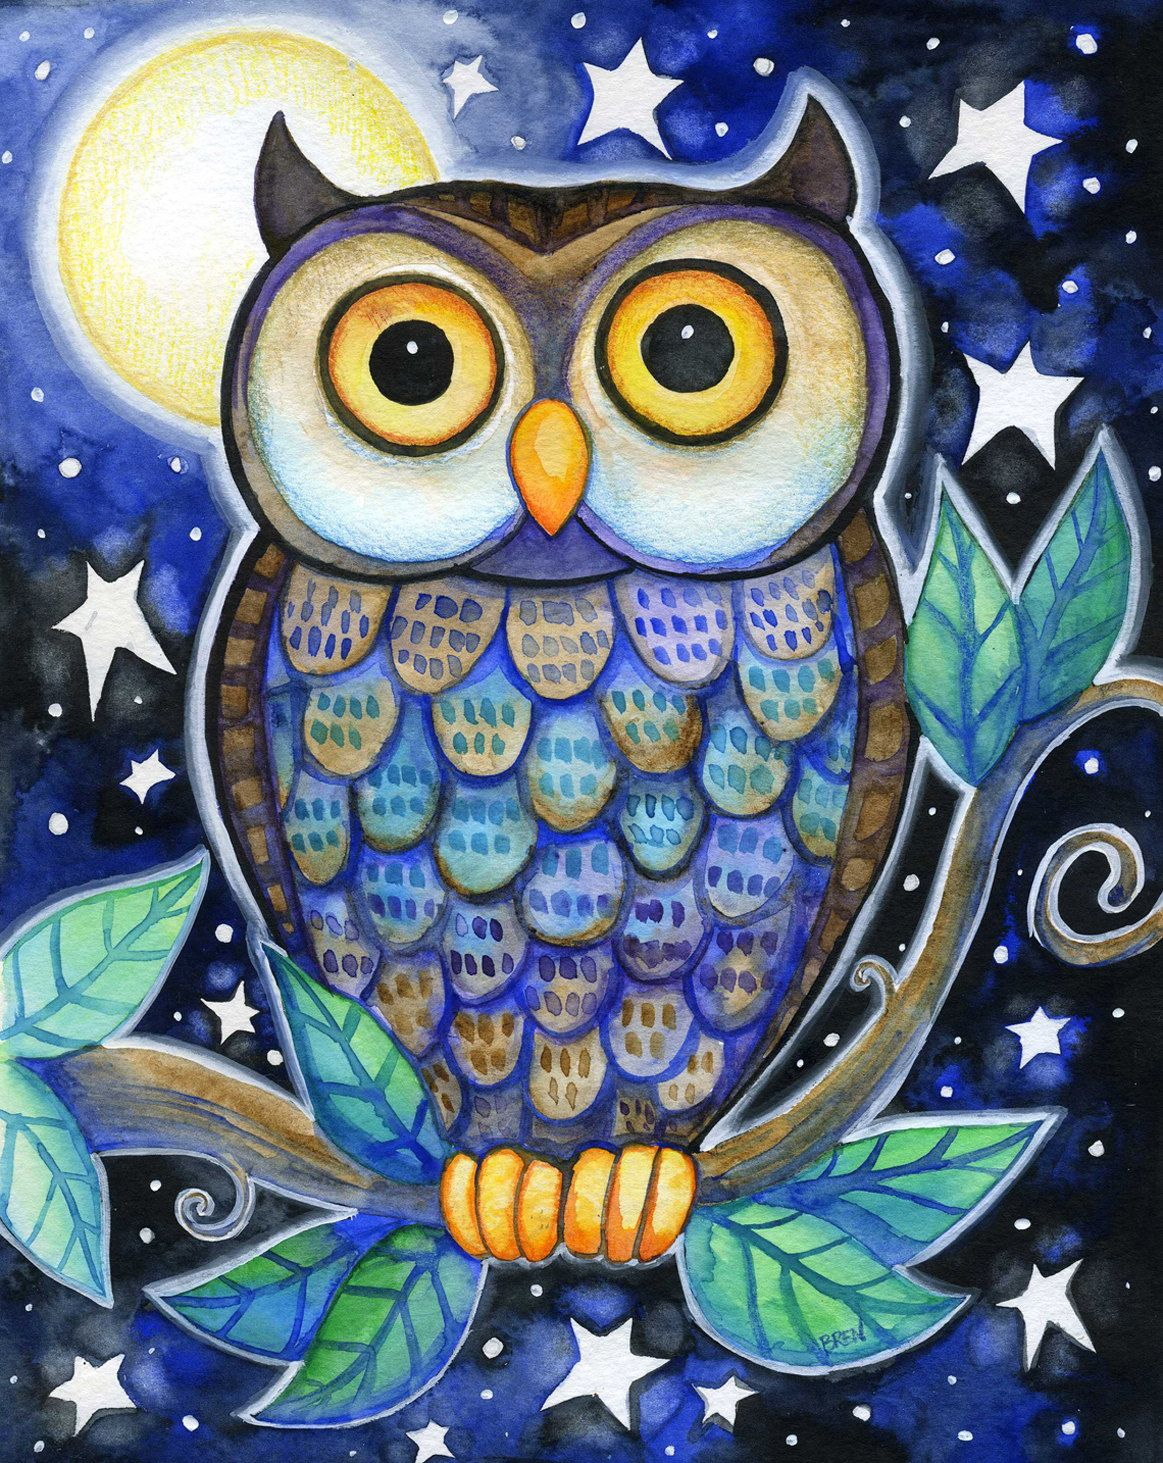 Colorful Pictures Of Owls Night Owl 8x10 Colorful Owl Moon Star Print Art I Like